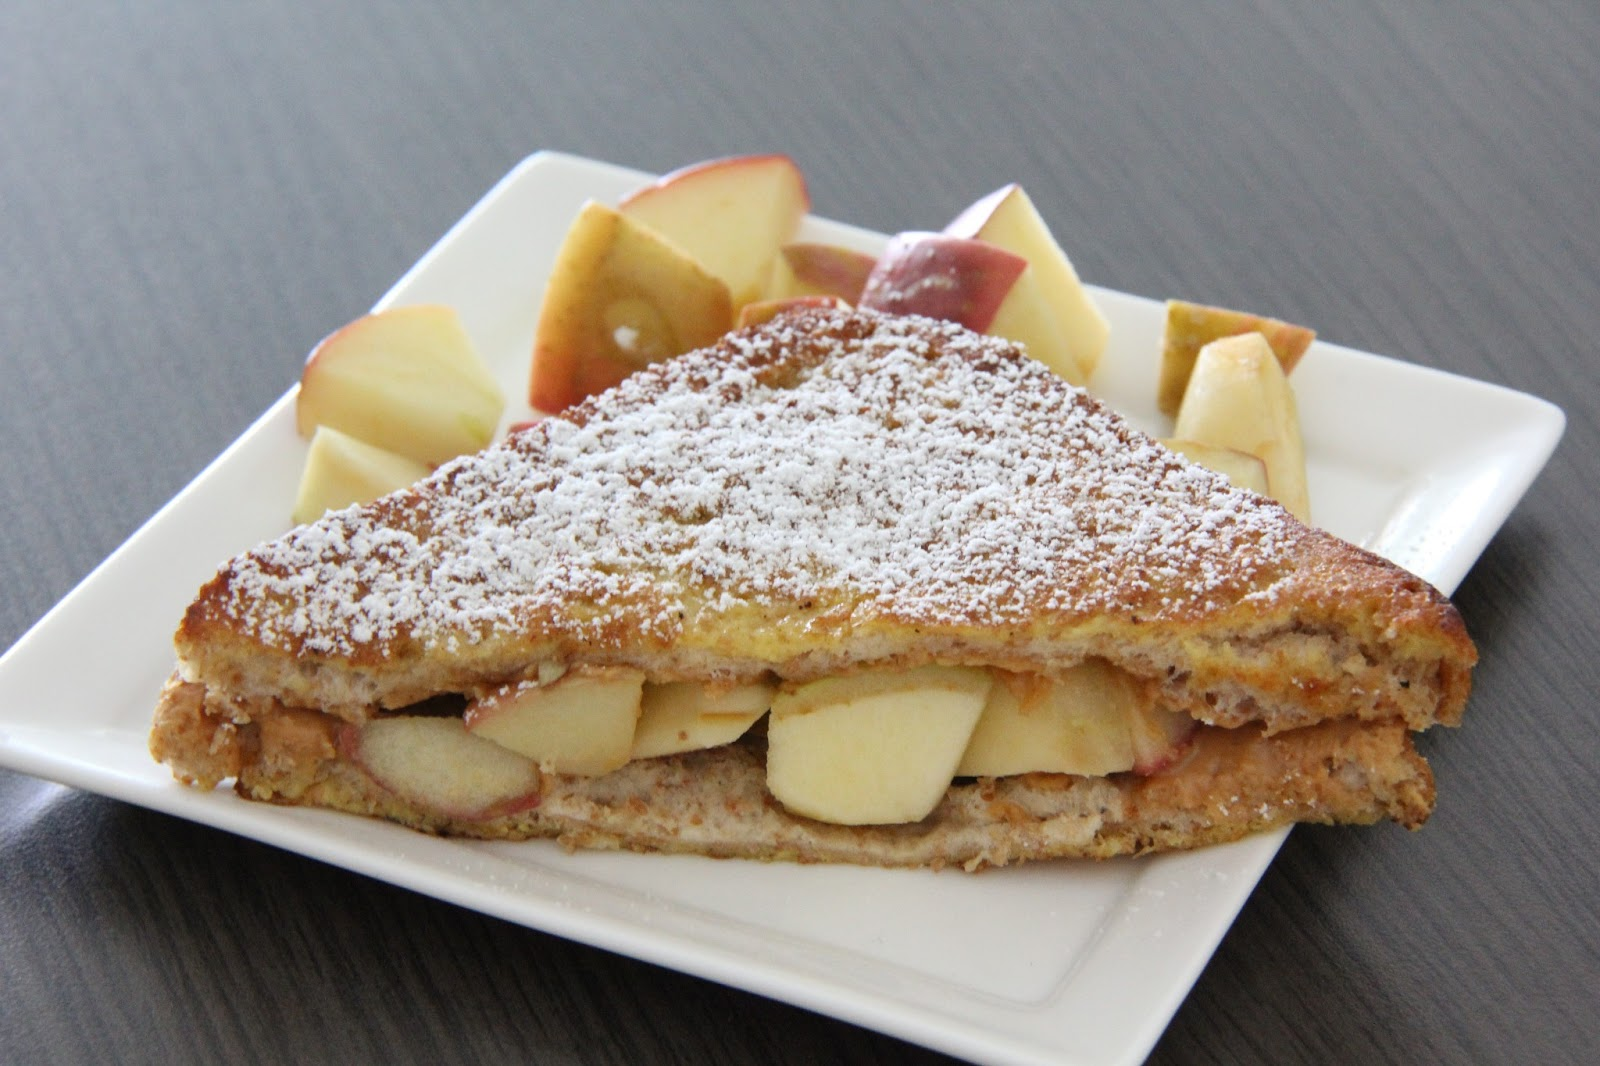 0112+apple+and+peanut+butter+stuffed+french+toast.JPG